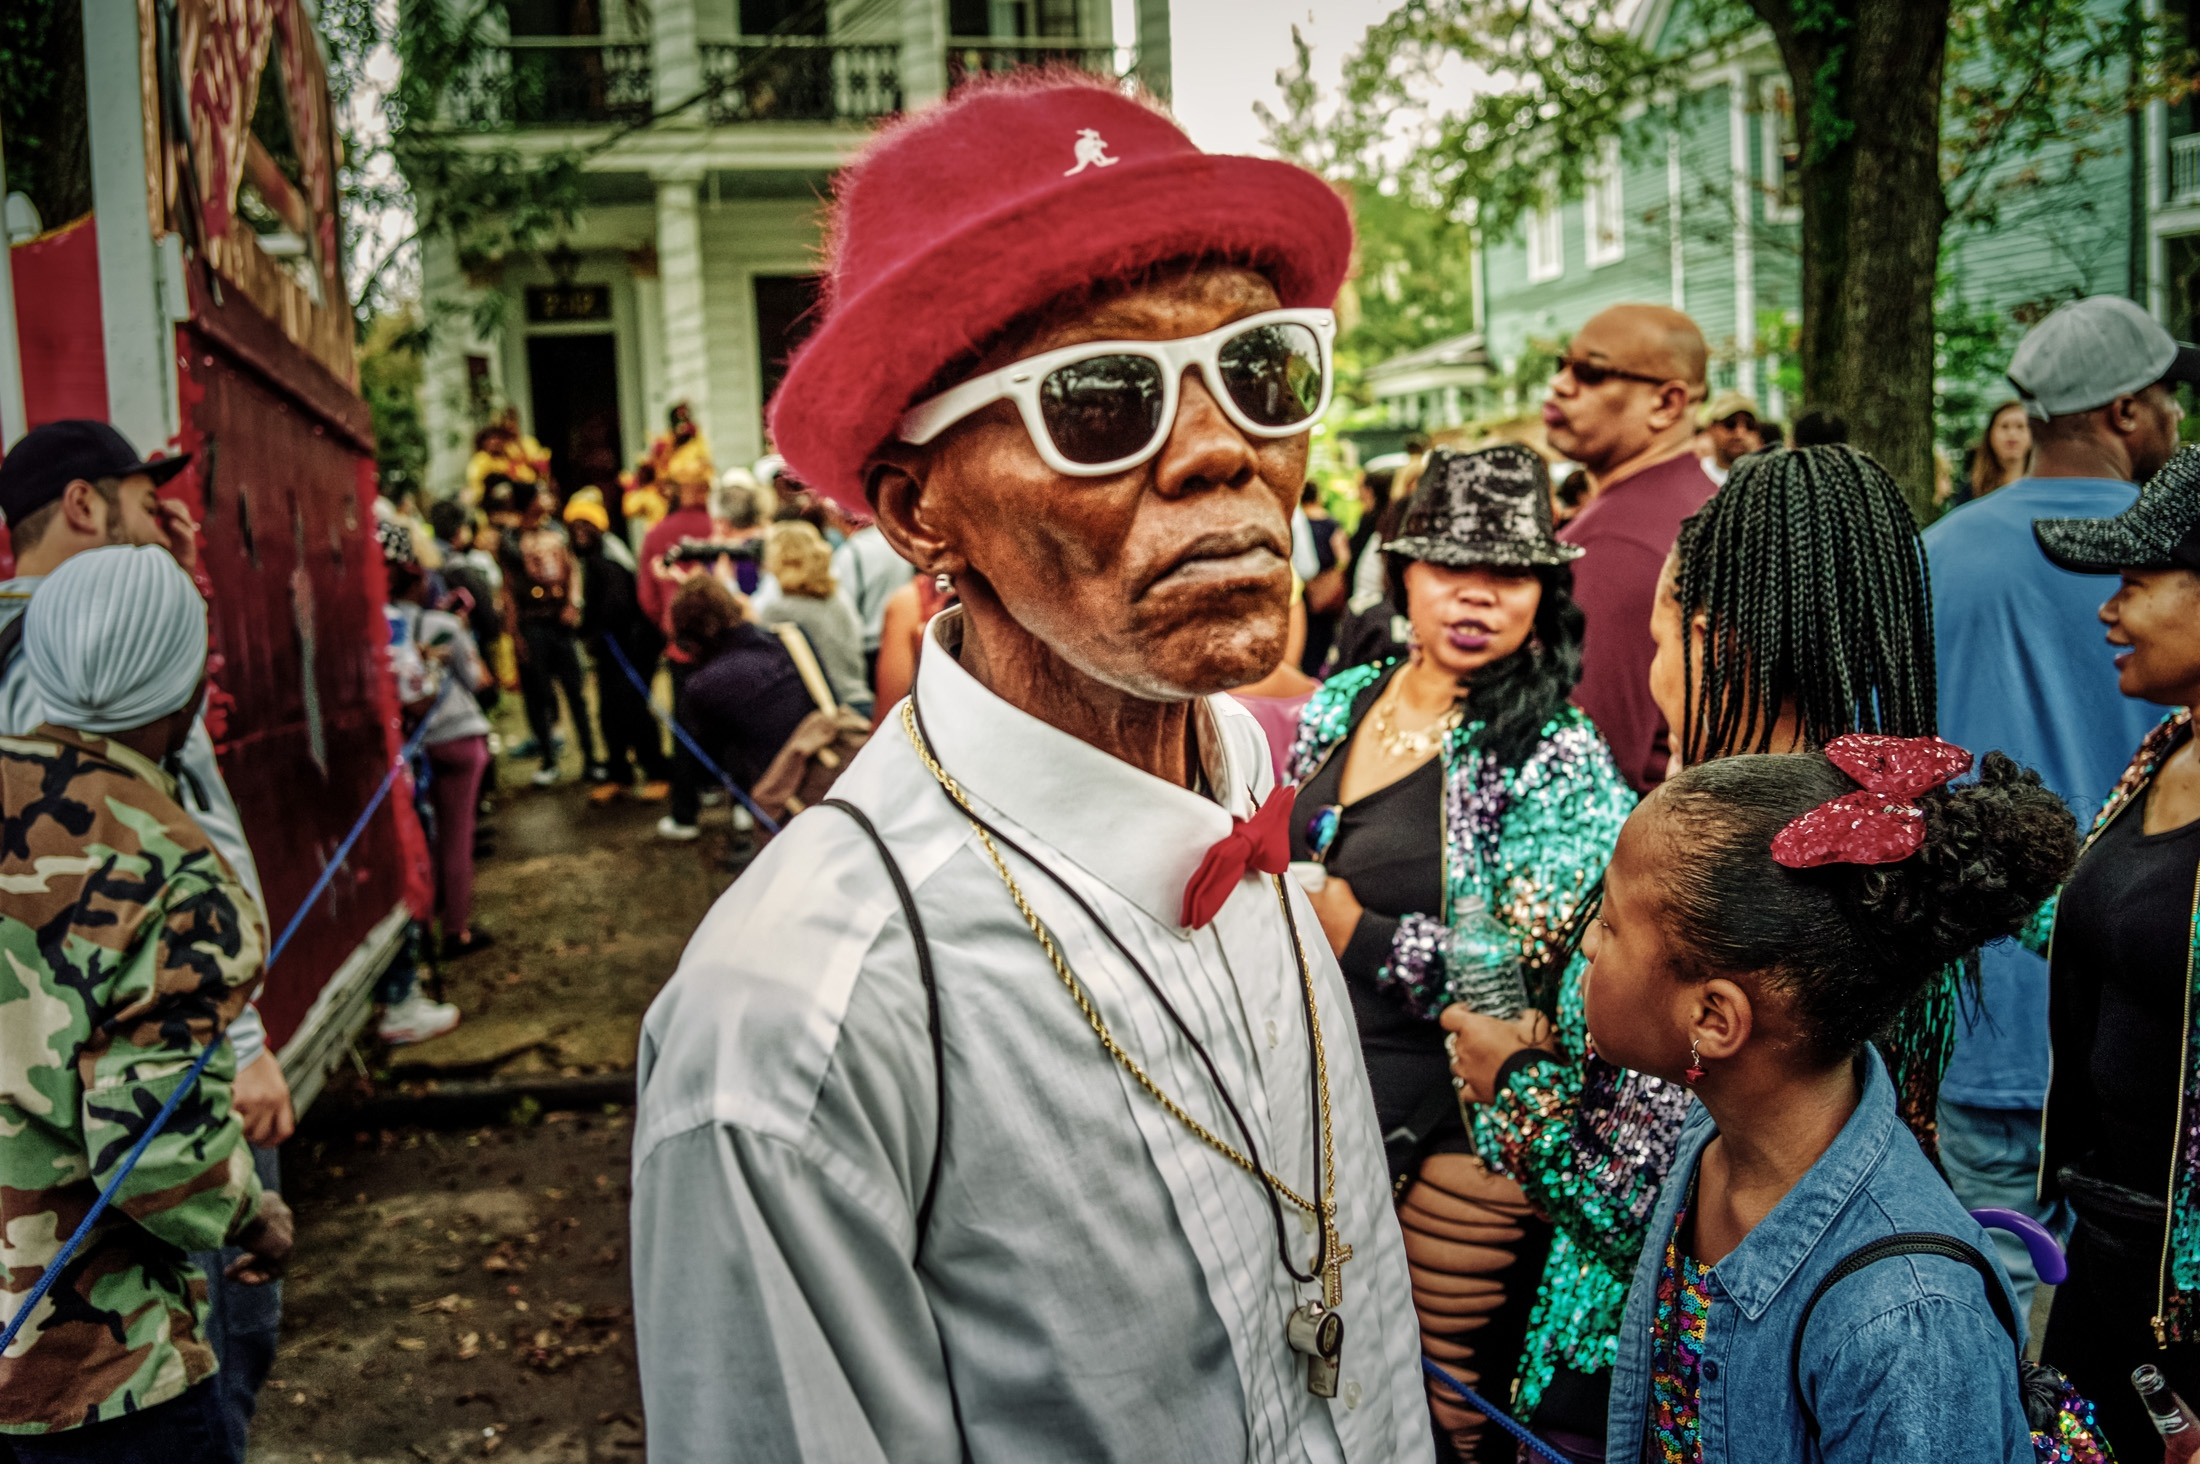 Street Portrait at Lady Rollers Second Line Parade